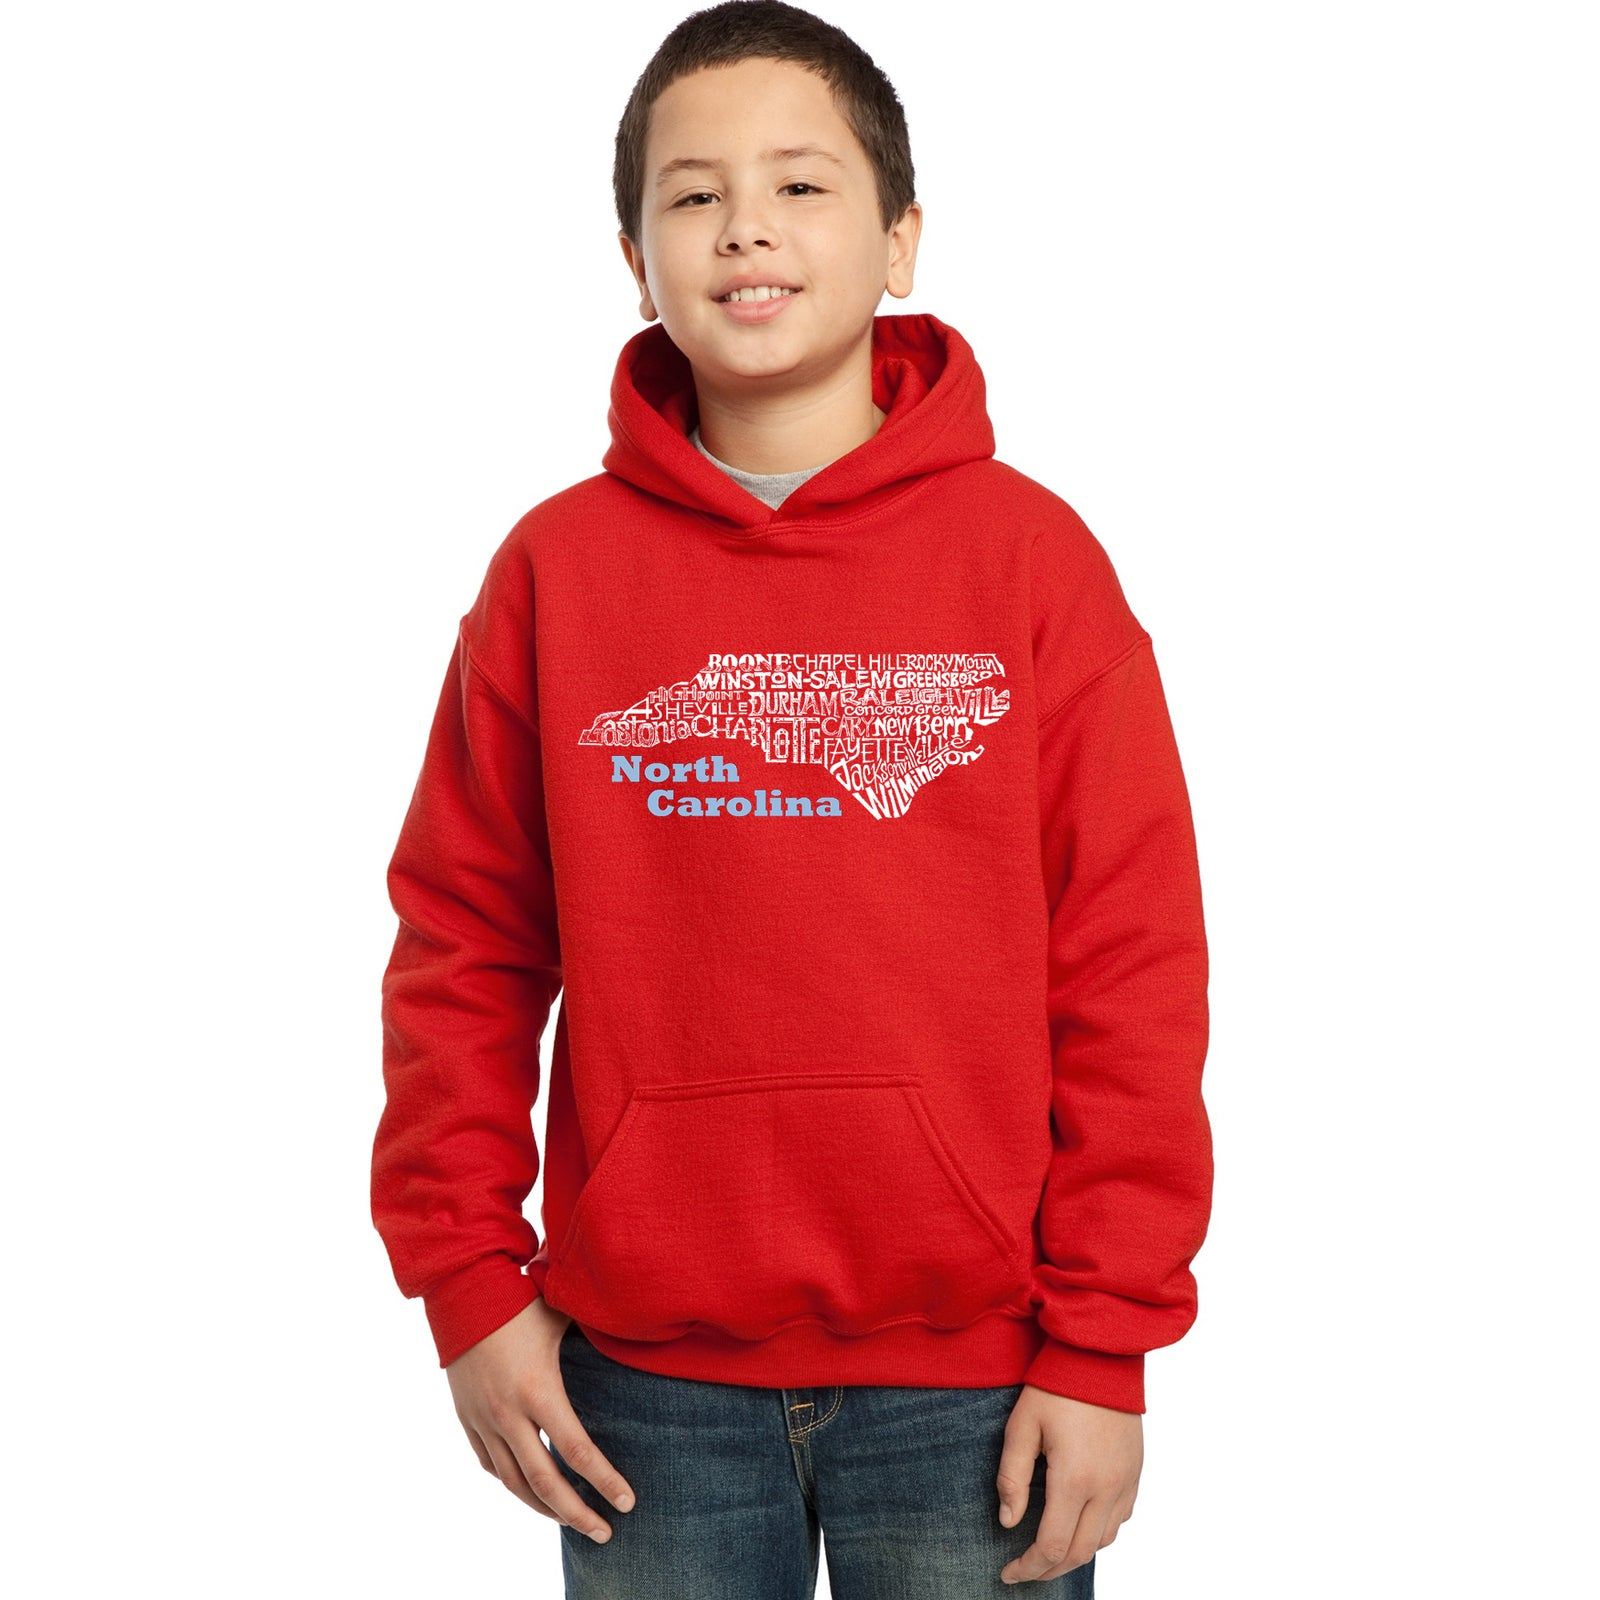 Boy's Word Art Hooded Sweatshirt - North Carolina